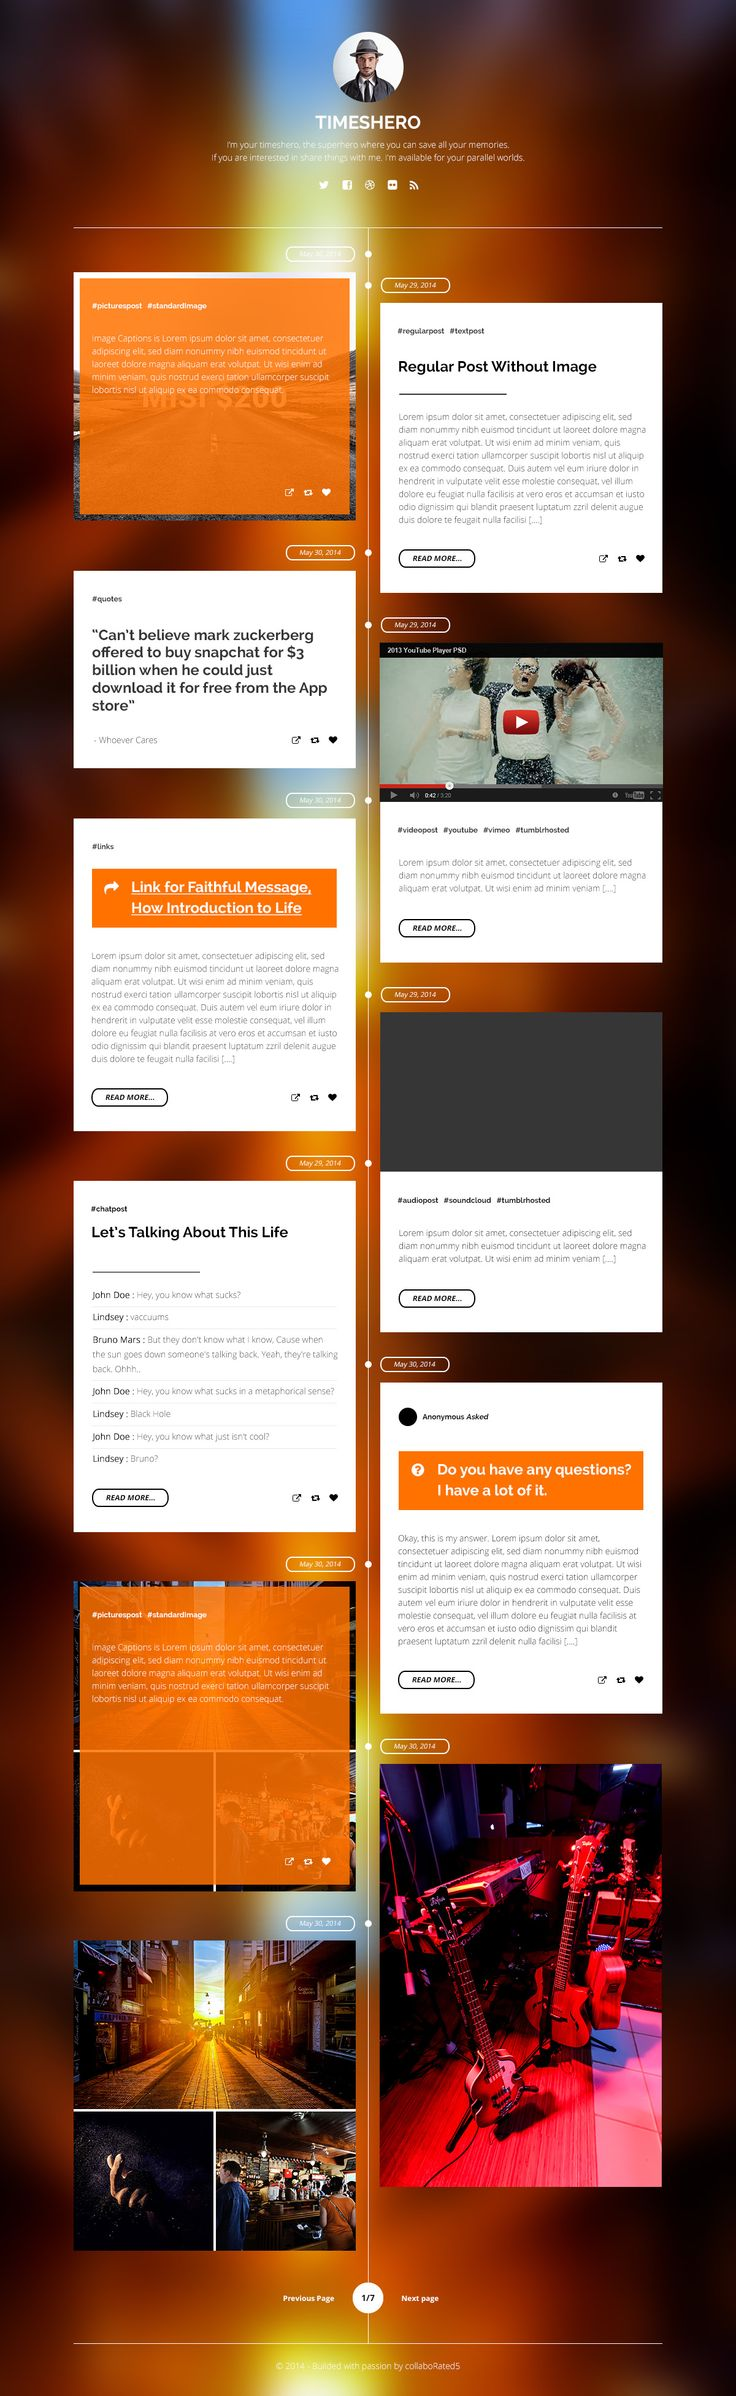 Timeshero is a Responsive Timeline Style Tumblr Theme. Perfect theme for blogger to share your moment from time to time or cool way to save your things from facebook, twitter, path or any other social media. Save your memories, use Timeshero :)  https://creativemarket.com/simpleshop/85064-Timeshero-Tumblr-Timeline-Theme